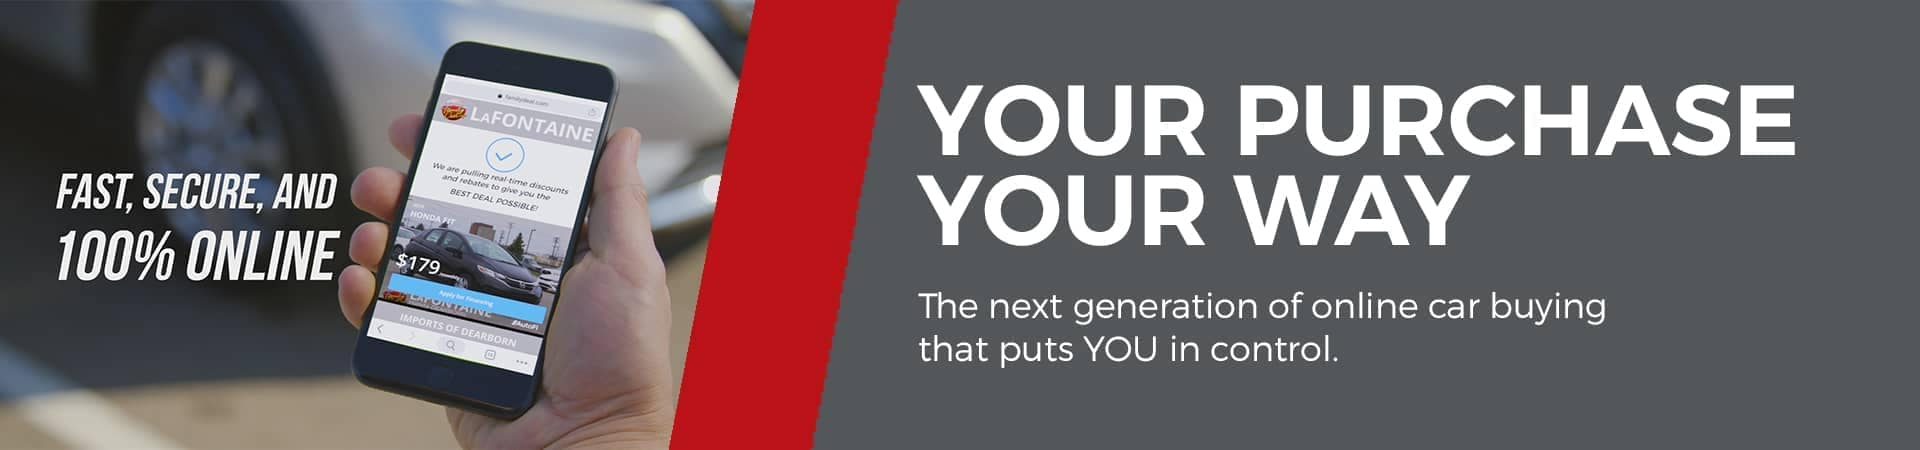 Your Purchase Your Way banner